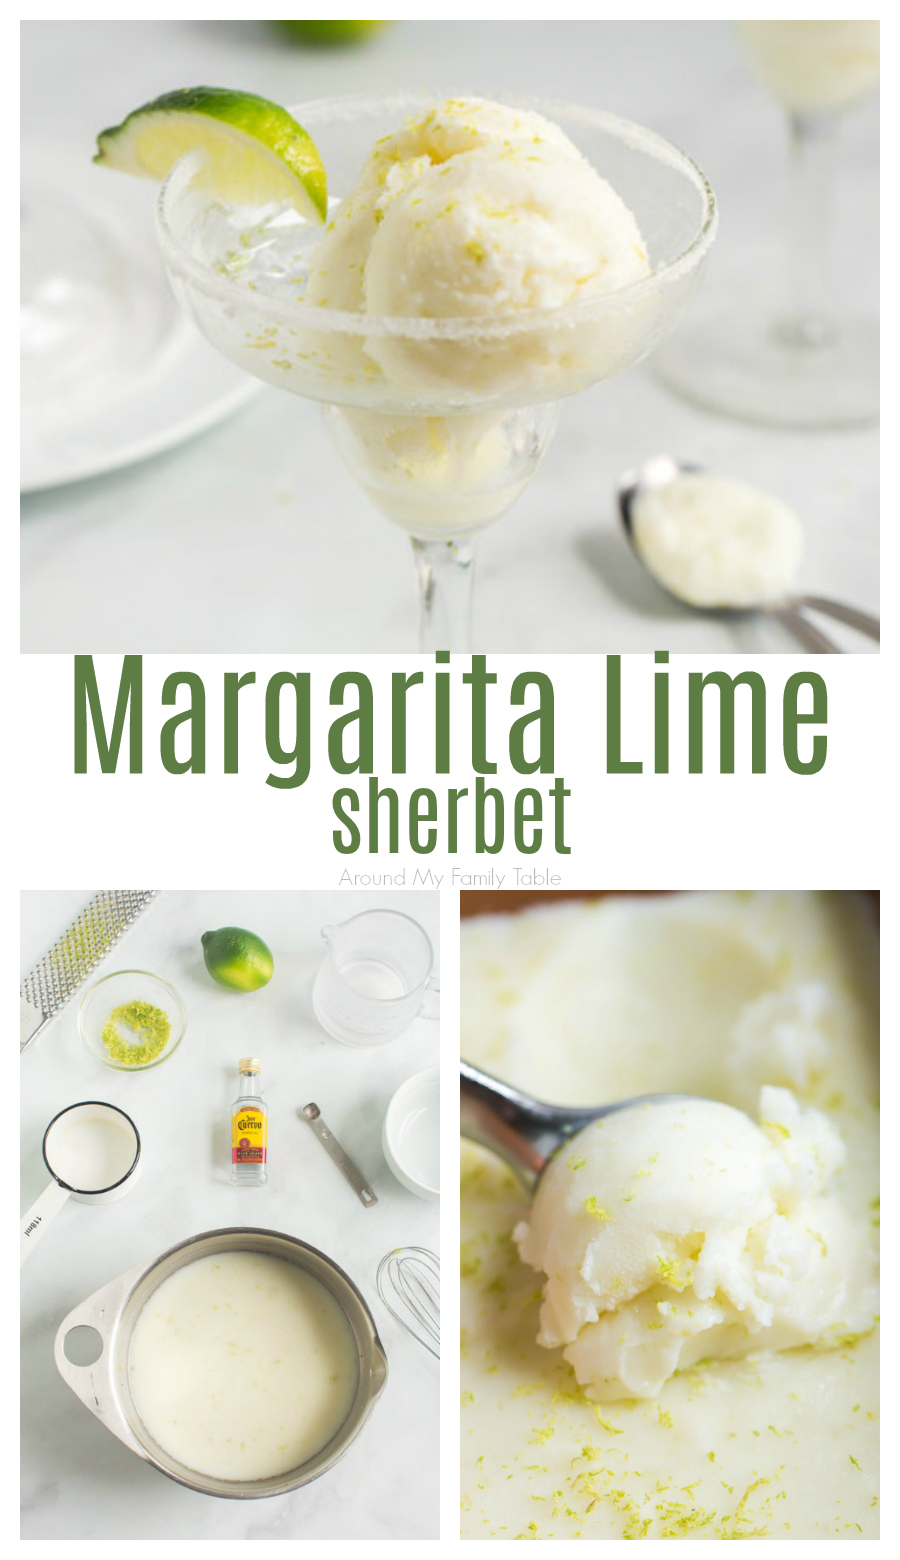 Lime sherbet marries a frozen margarita recipe to make a delicious, cool dessert! Make this easy sherbet recipe to enjoy this summer! via @slingmama